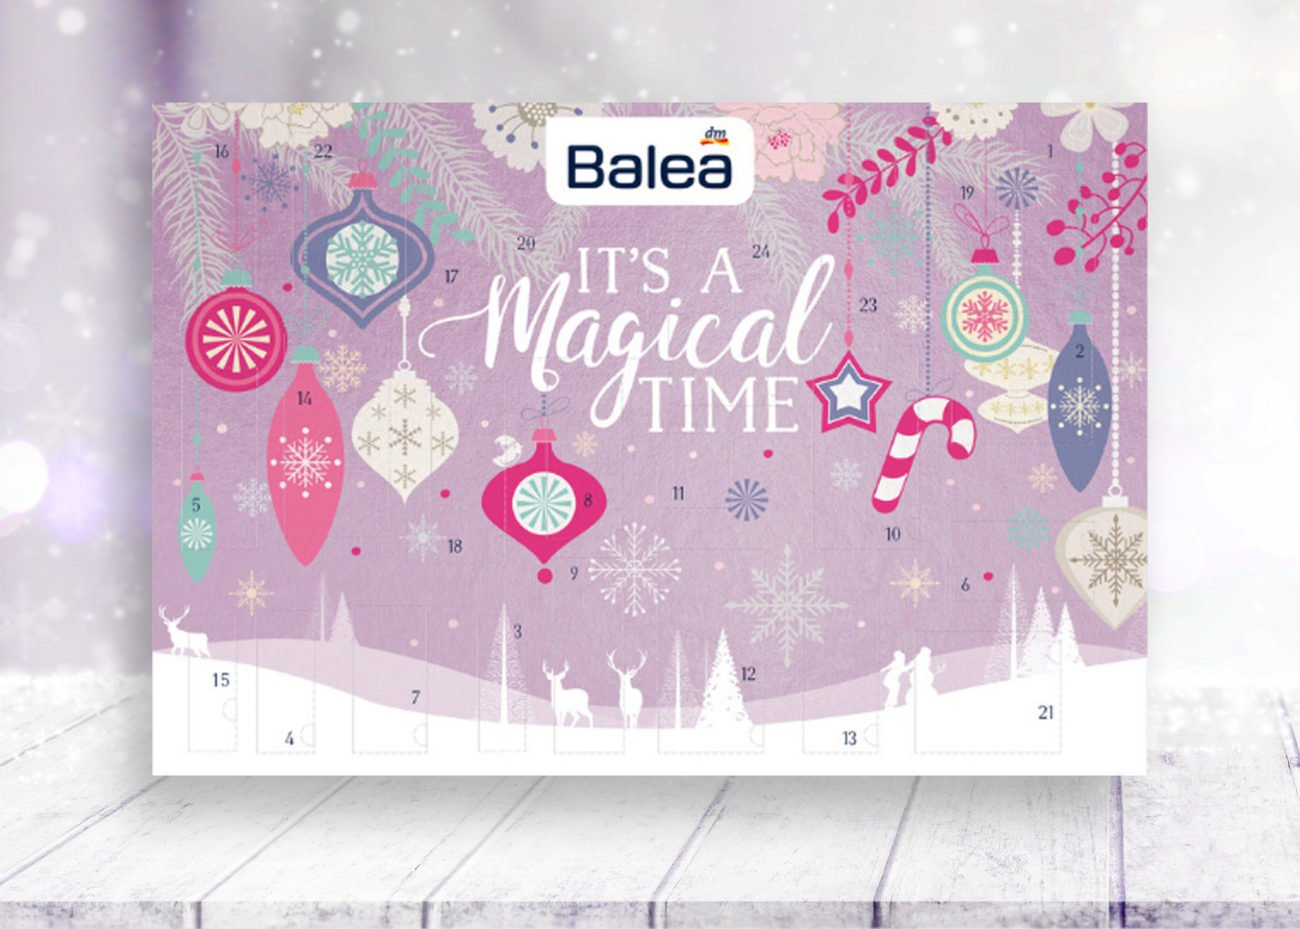 Balea Adventskalender 2019